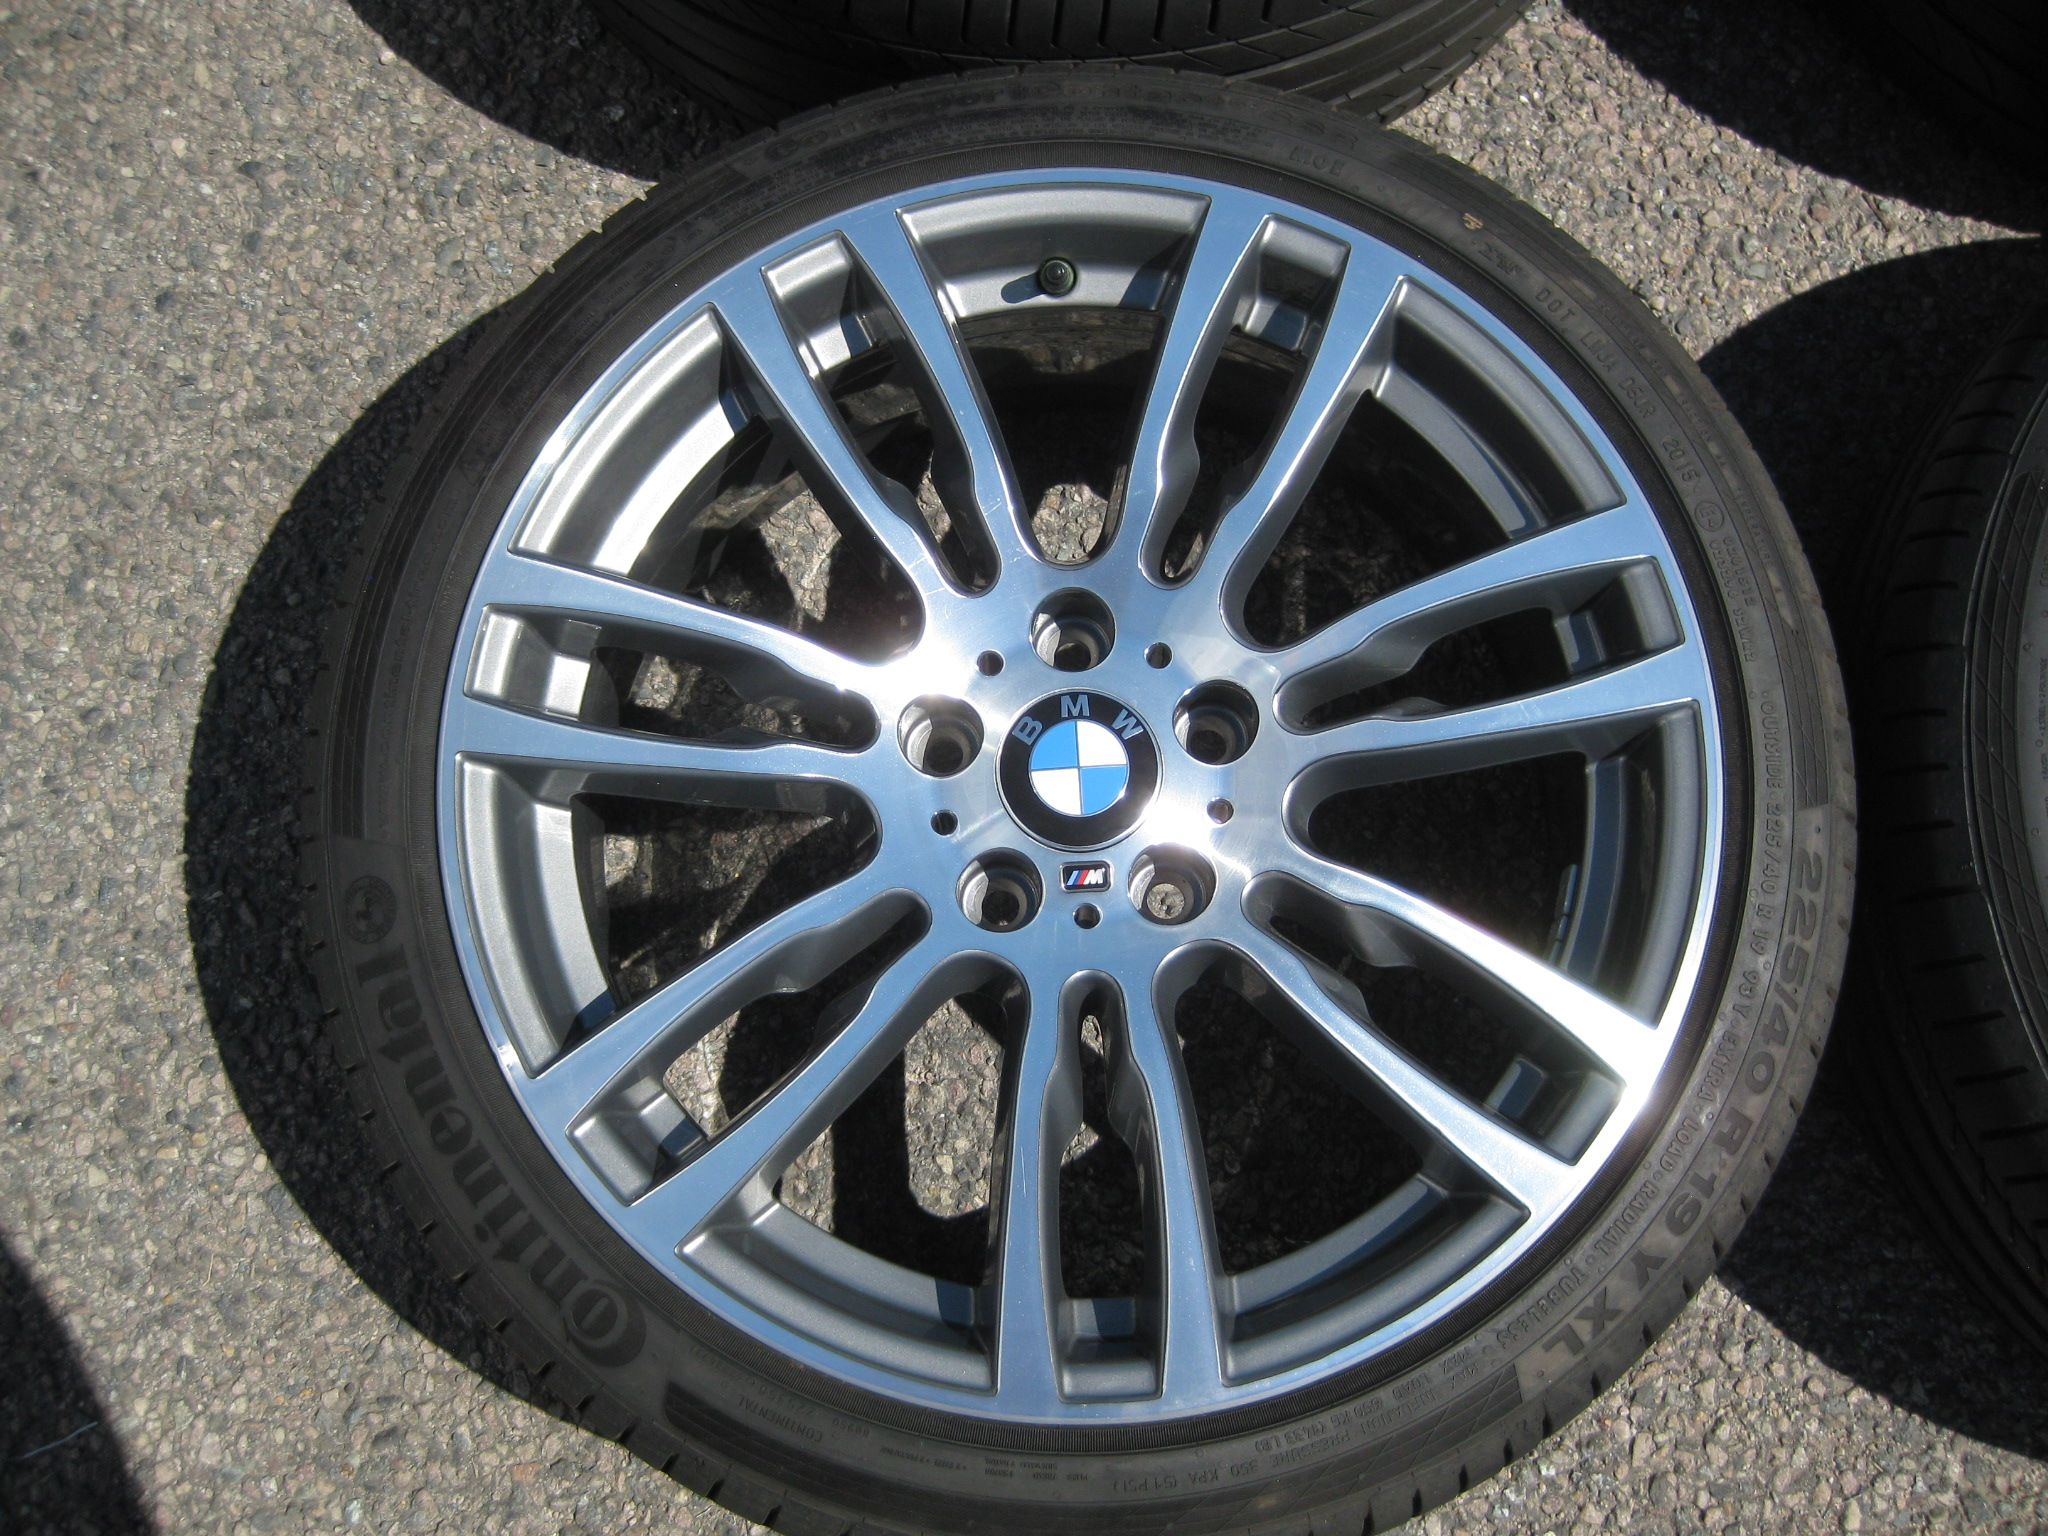 "USED 19"" GENUINE STYLE 403 F30/31 M DOUBLE SPOKE ALLOYS WHEELS, FULLY REFURBED INC GOOD CONTINENTAL RUNFLATS"